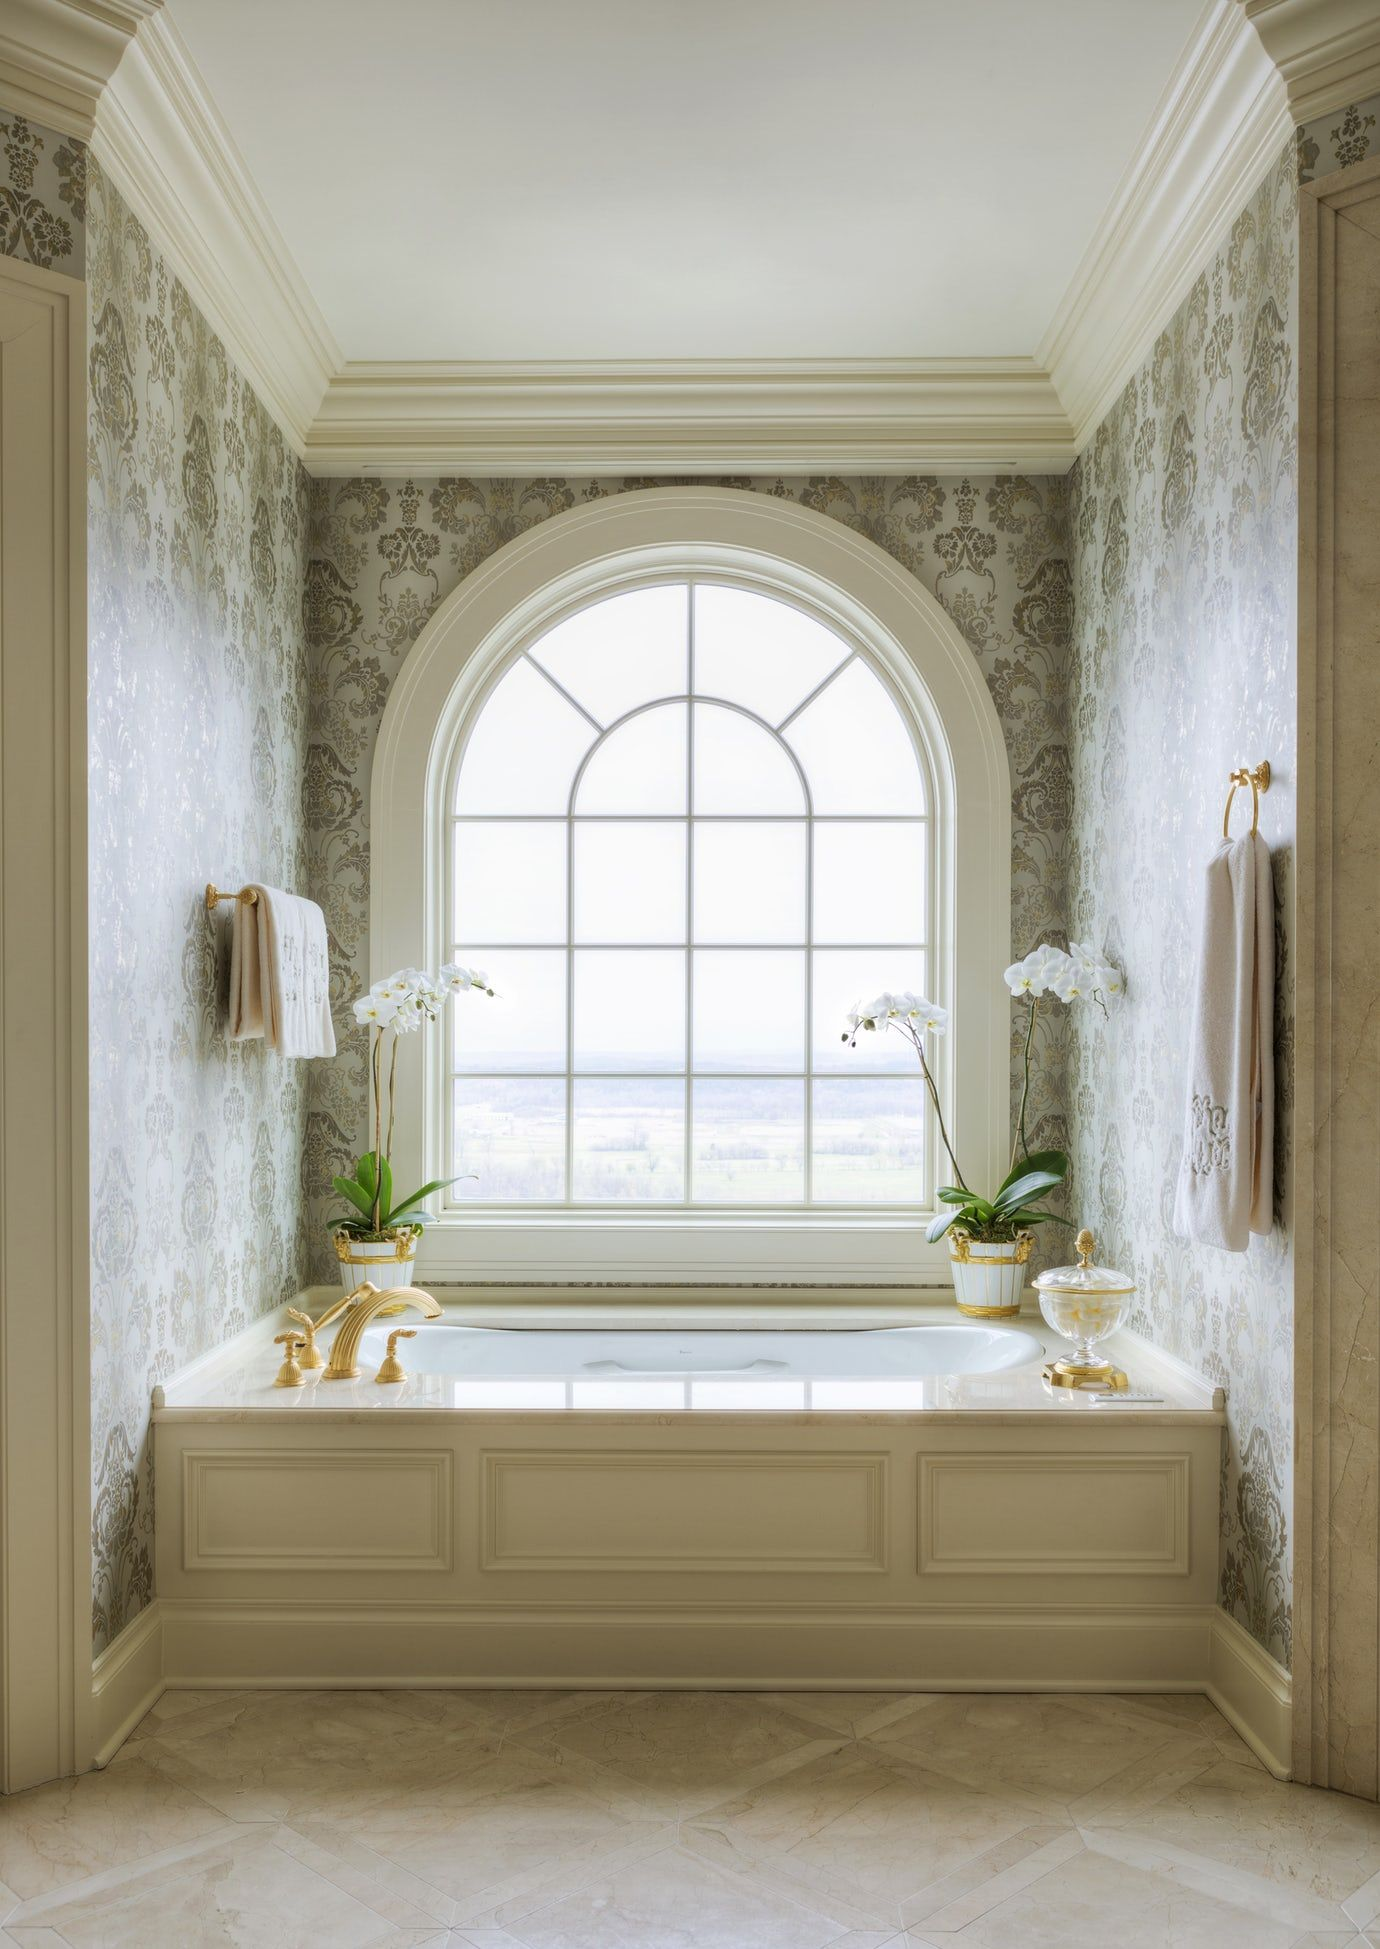 Residential Interior Project Has Modern Yet Vintage Take: Large Undermount Soaking Tub Beneath Arched Window Damask